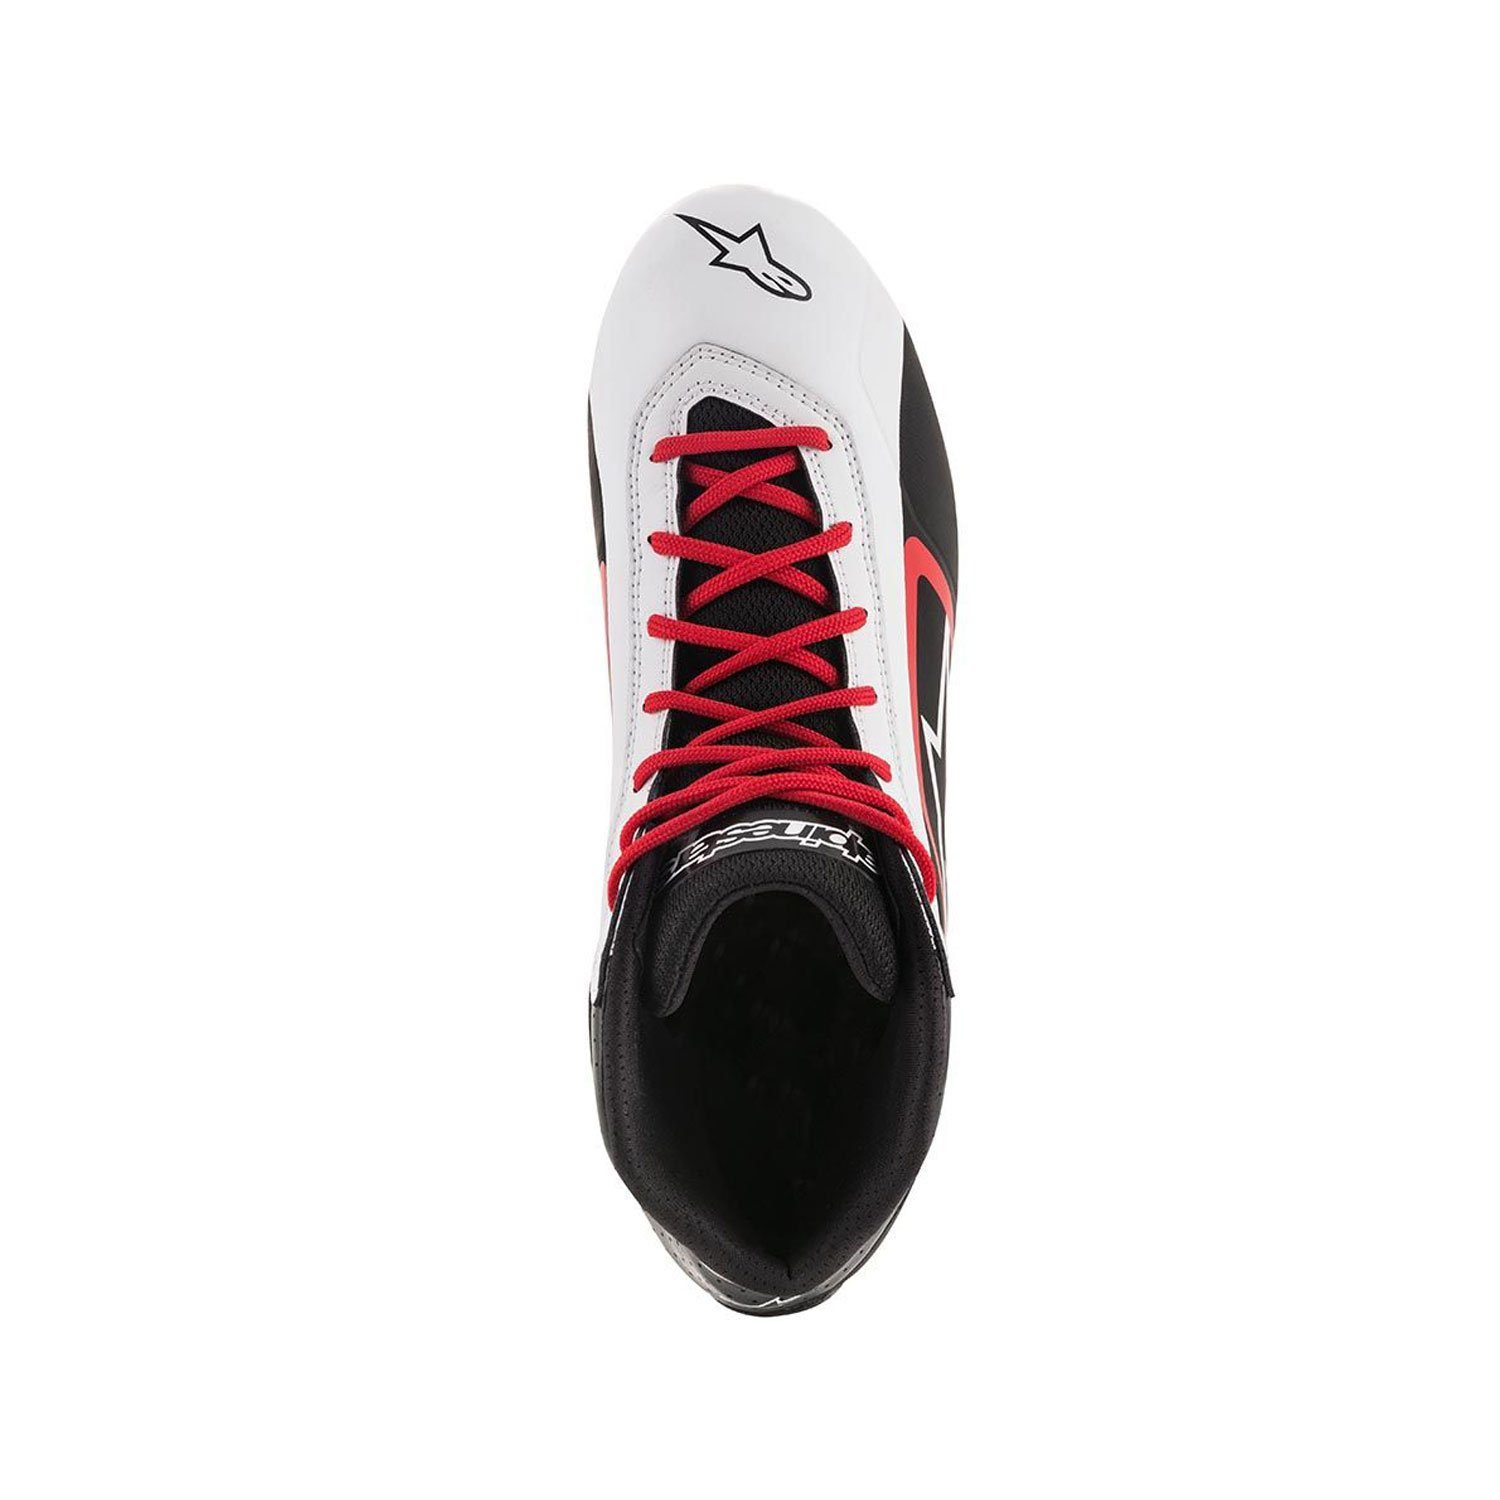 33788409cee1 ... Alpinestars Italy TECH 1-K START MY18 Karting Shoes White Black ...